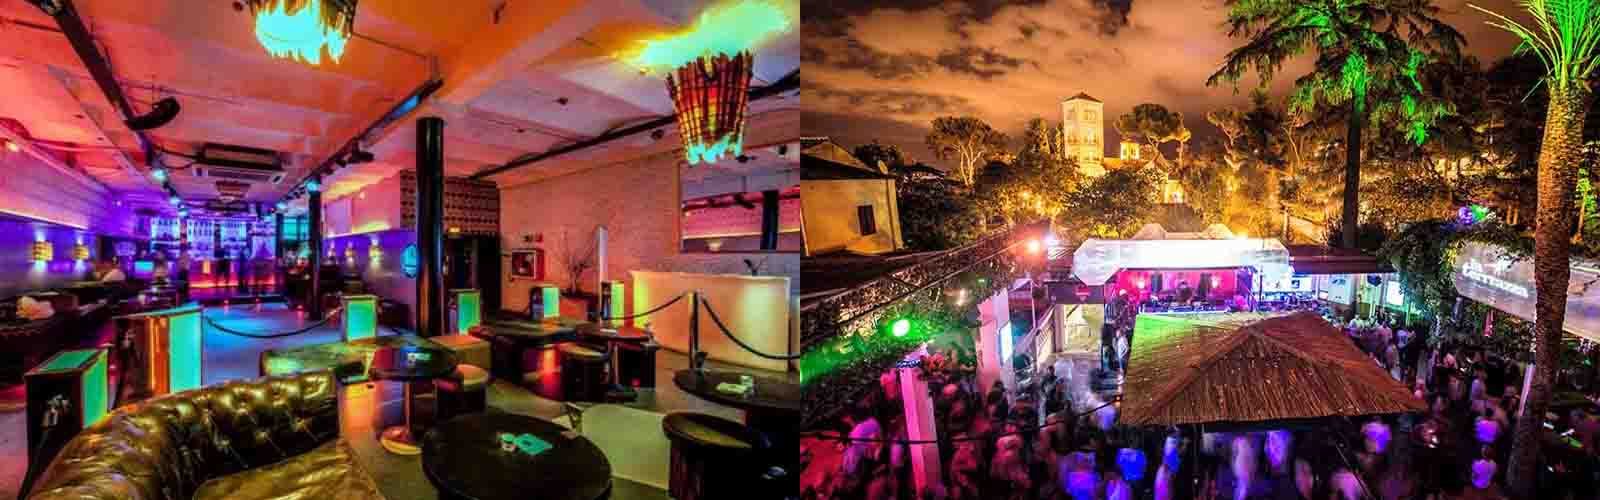 Party outdoor, discover the nightlife of Barcelona at La Terrazza